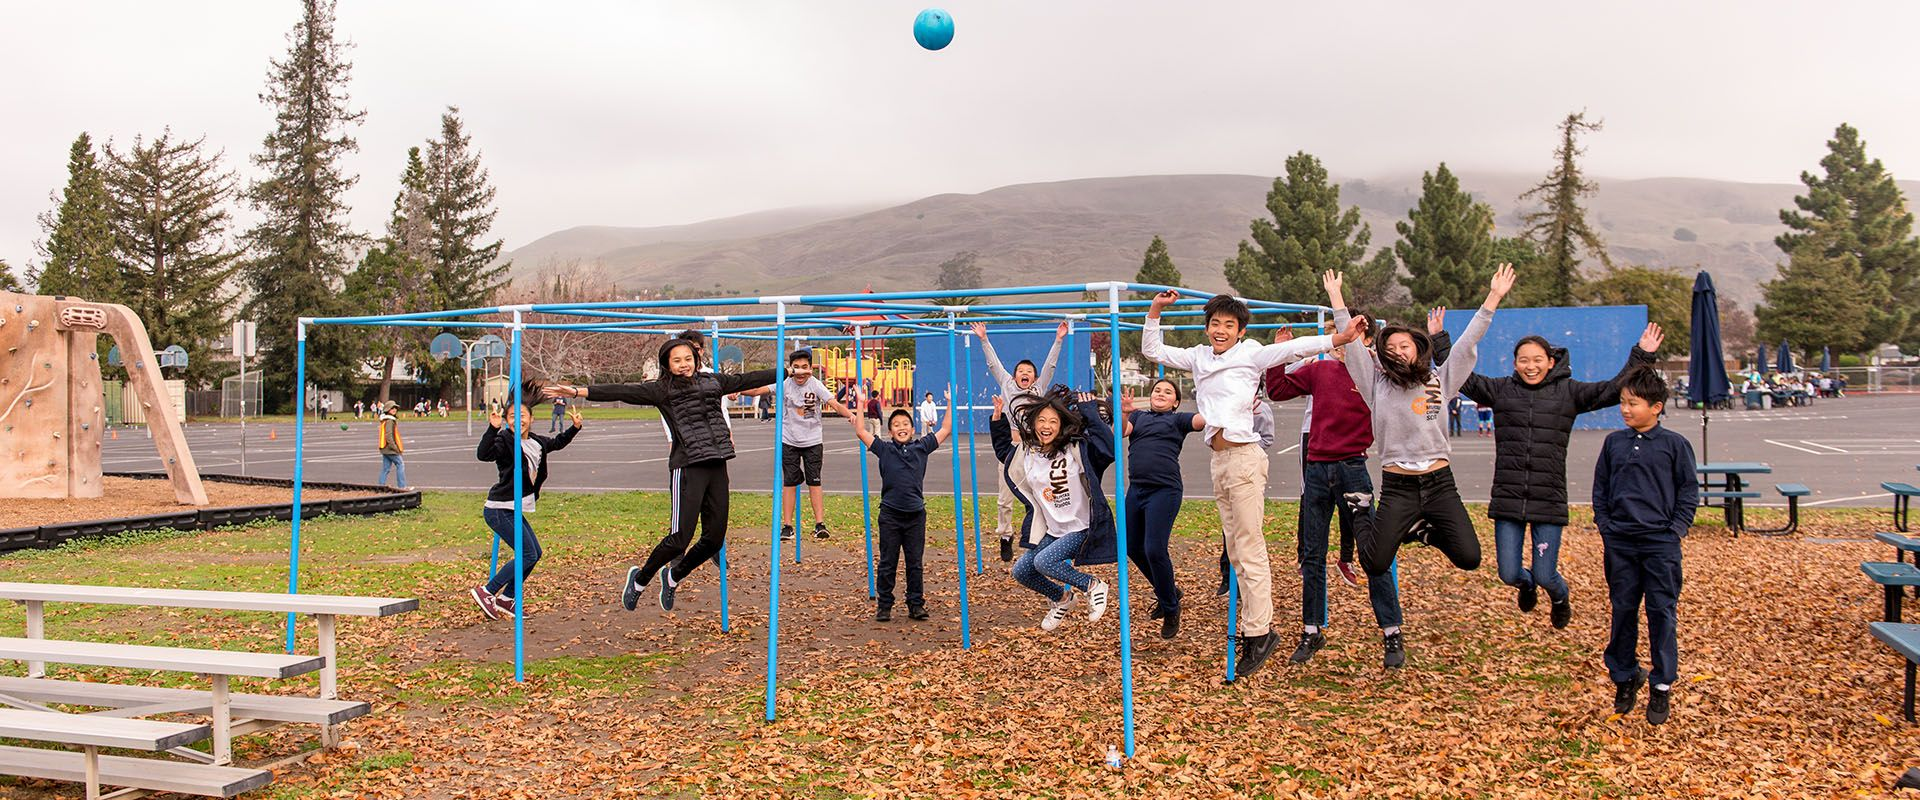 You're invited to spend some time with us and discover why Milpitas Christian School may be right place for you!